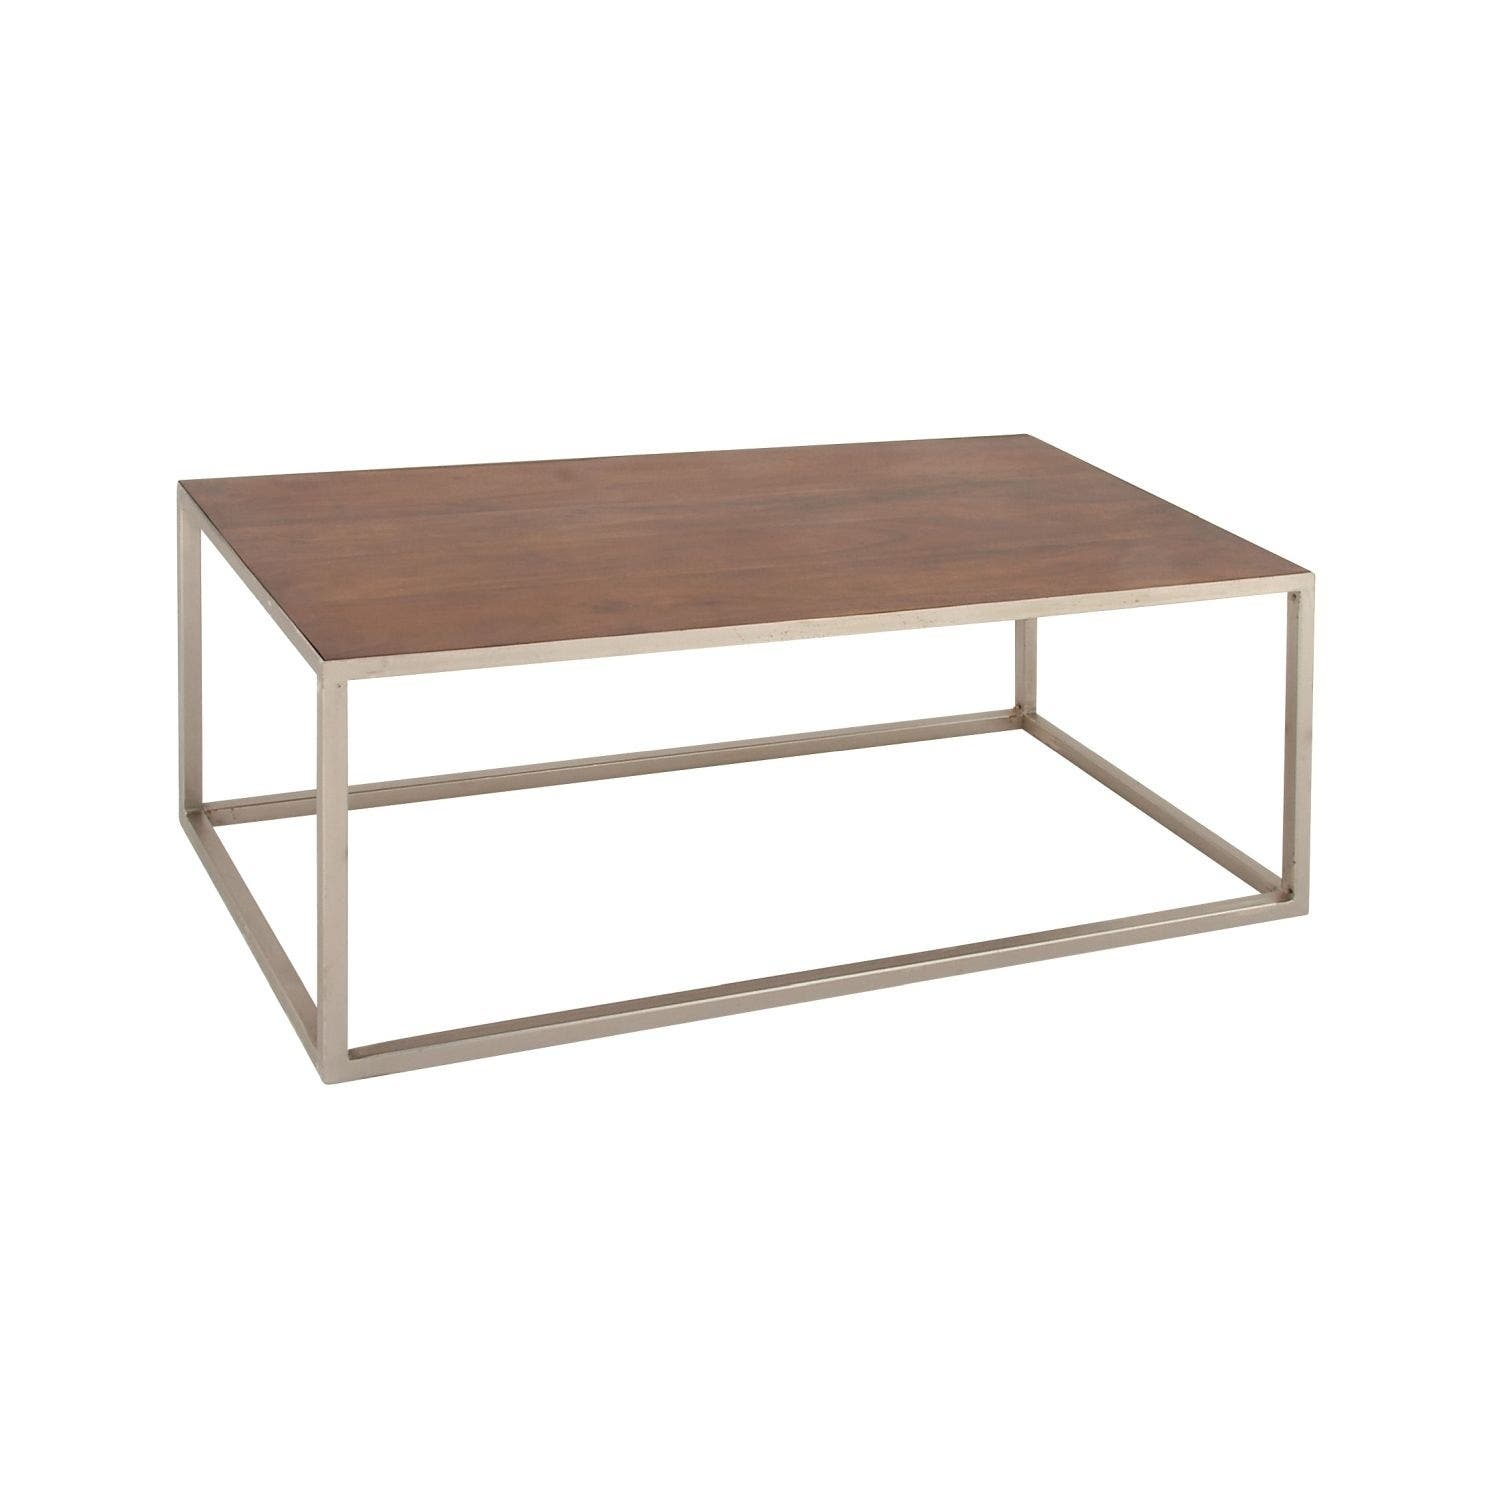 Coffee console sofa end tables for less overstock for Sofa table higher than sofa